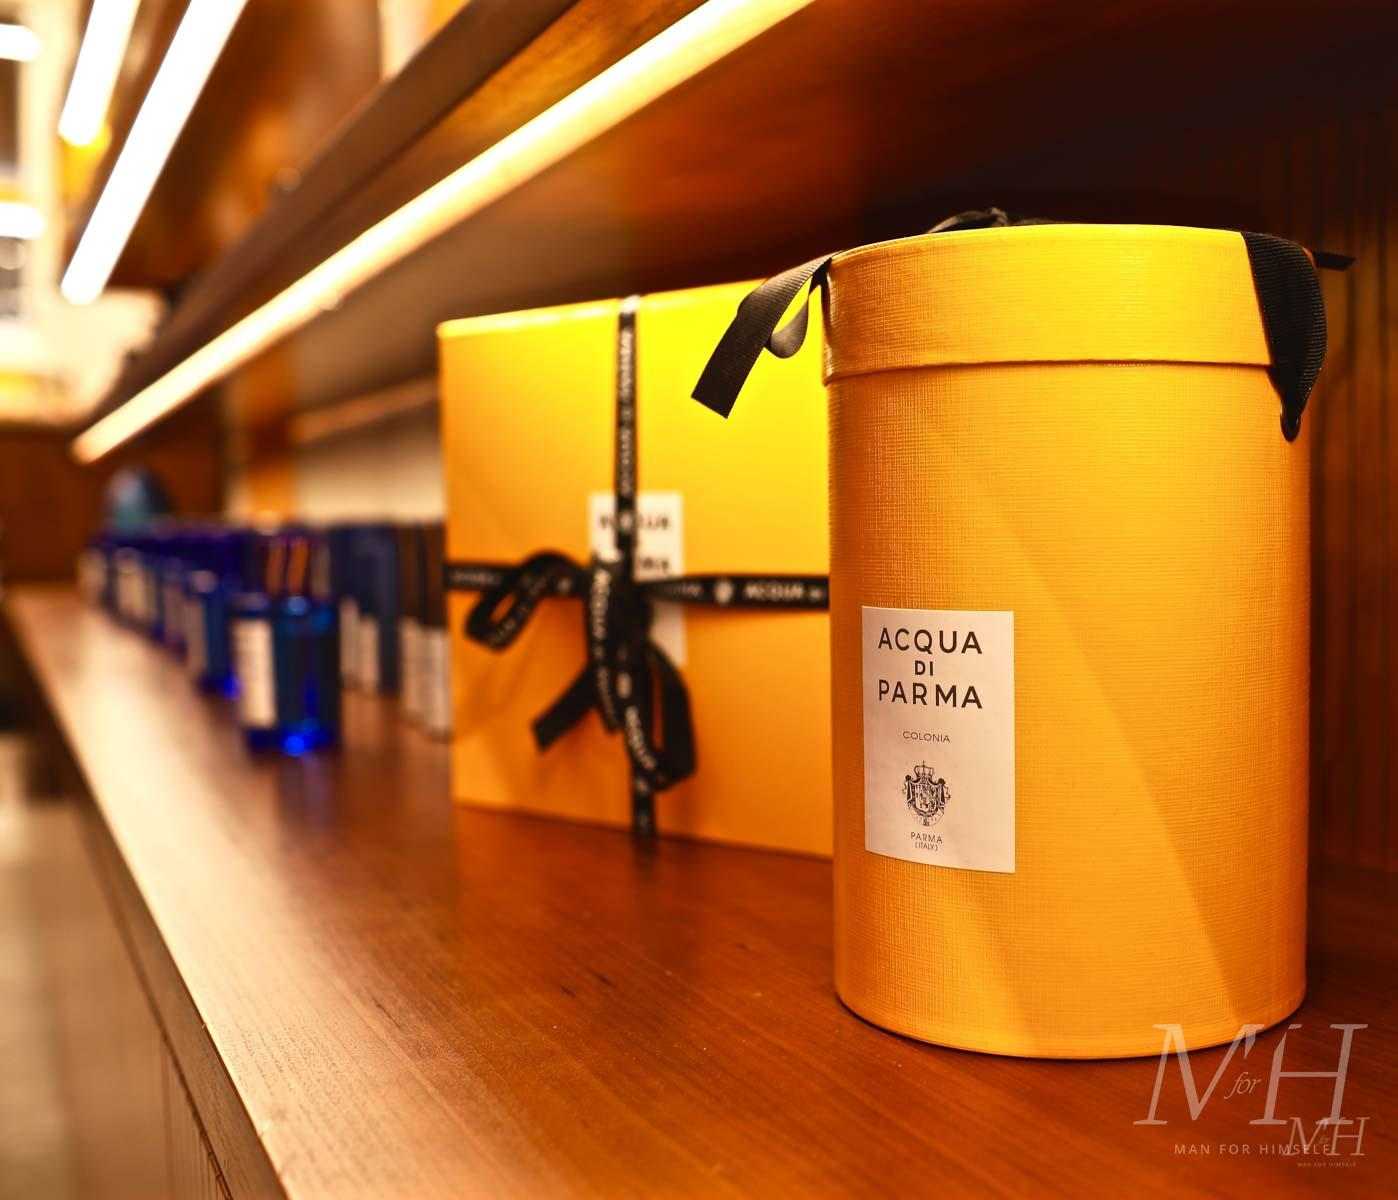 acqua-di-parma-uk-barbershop-man-for-himself-2